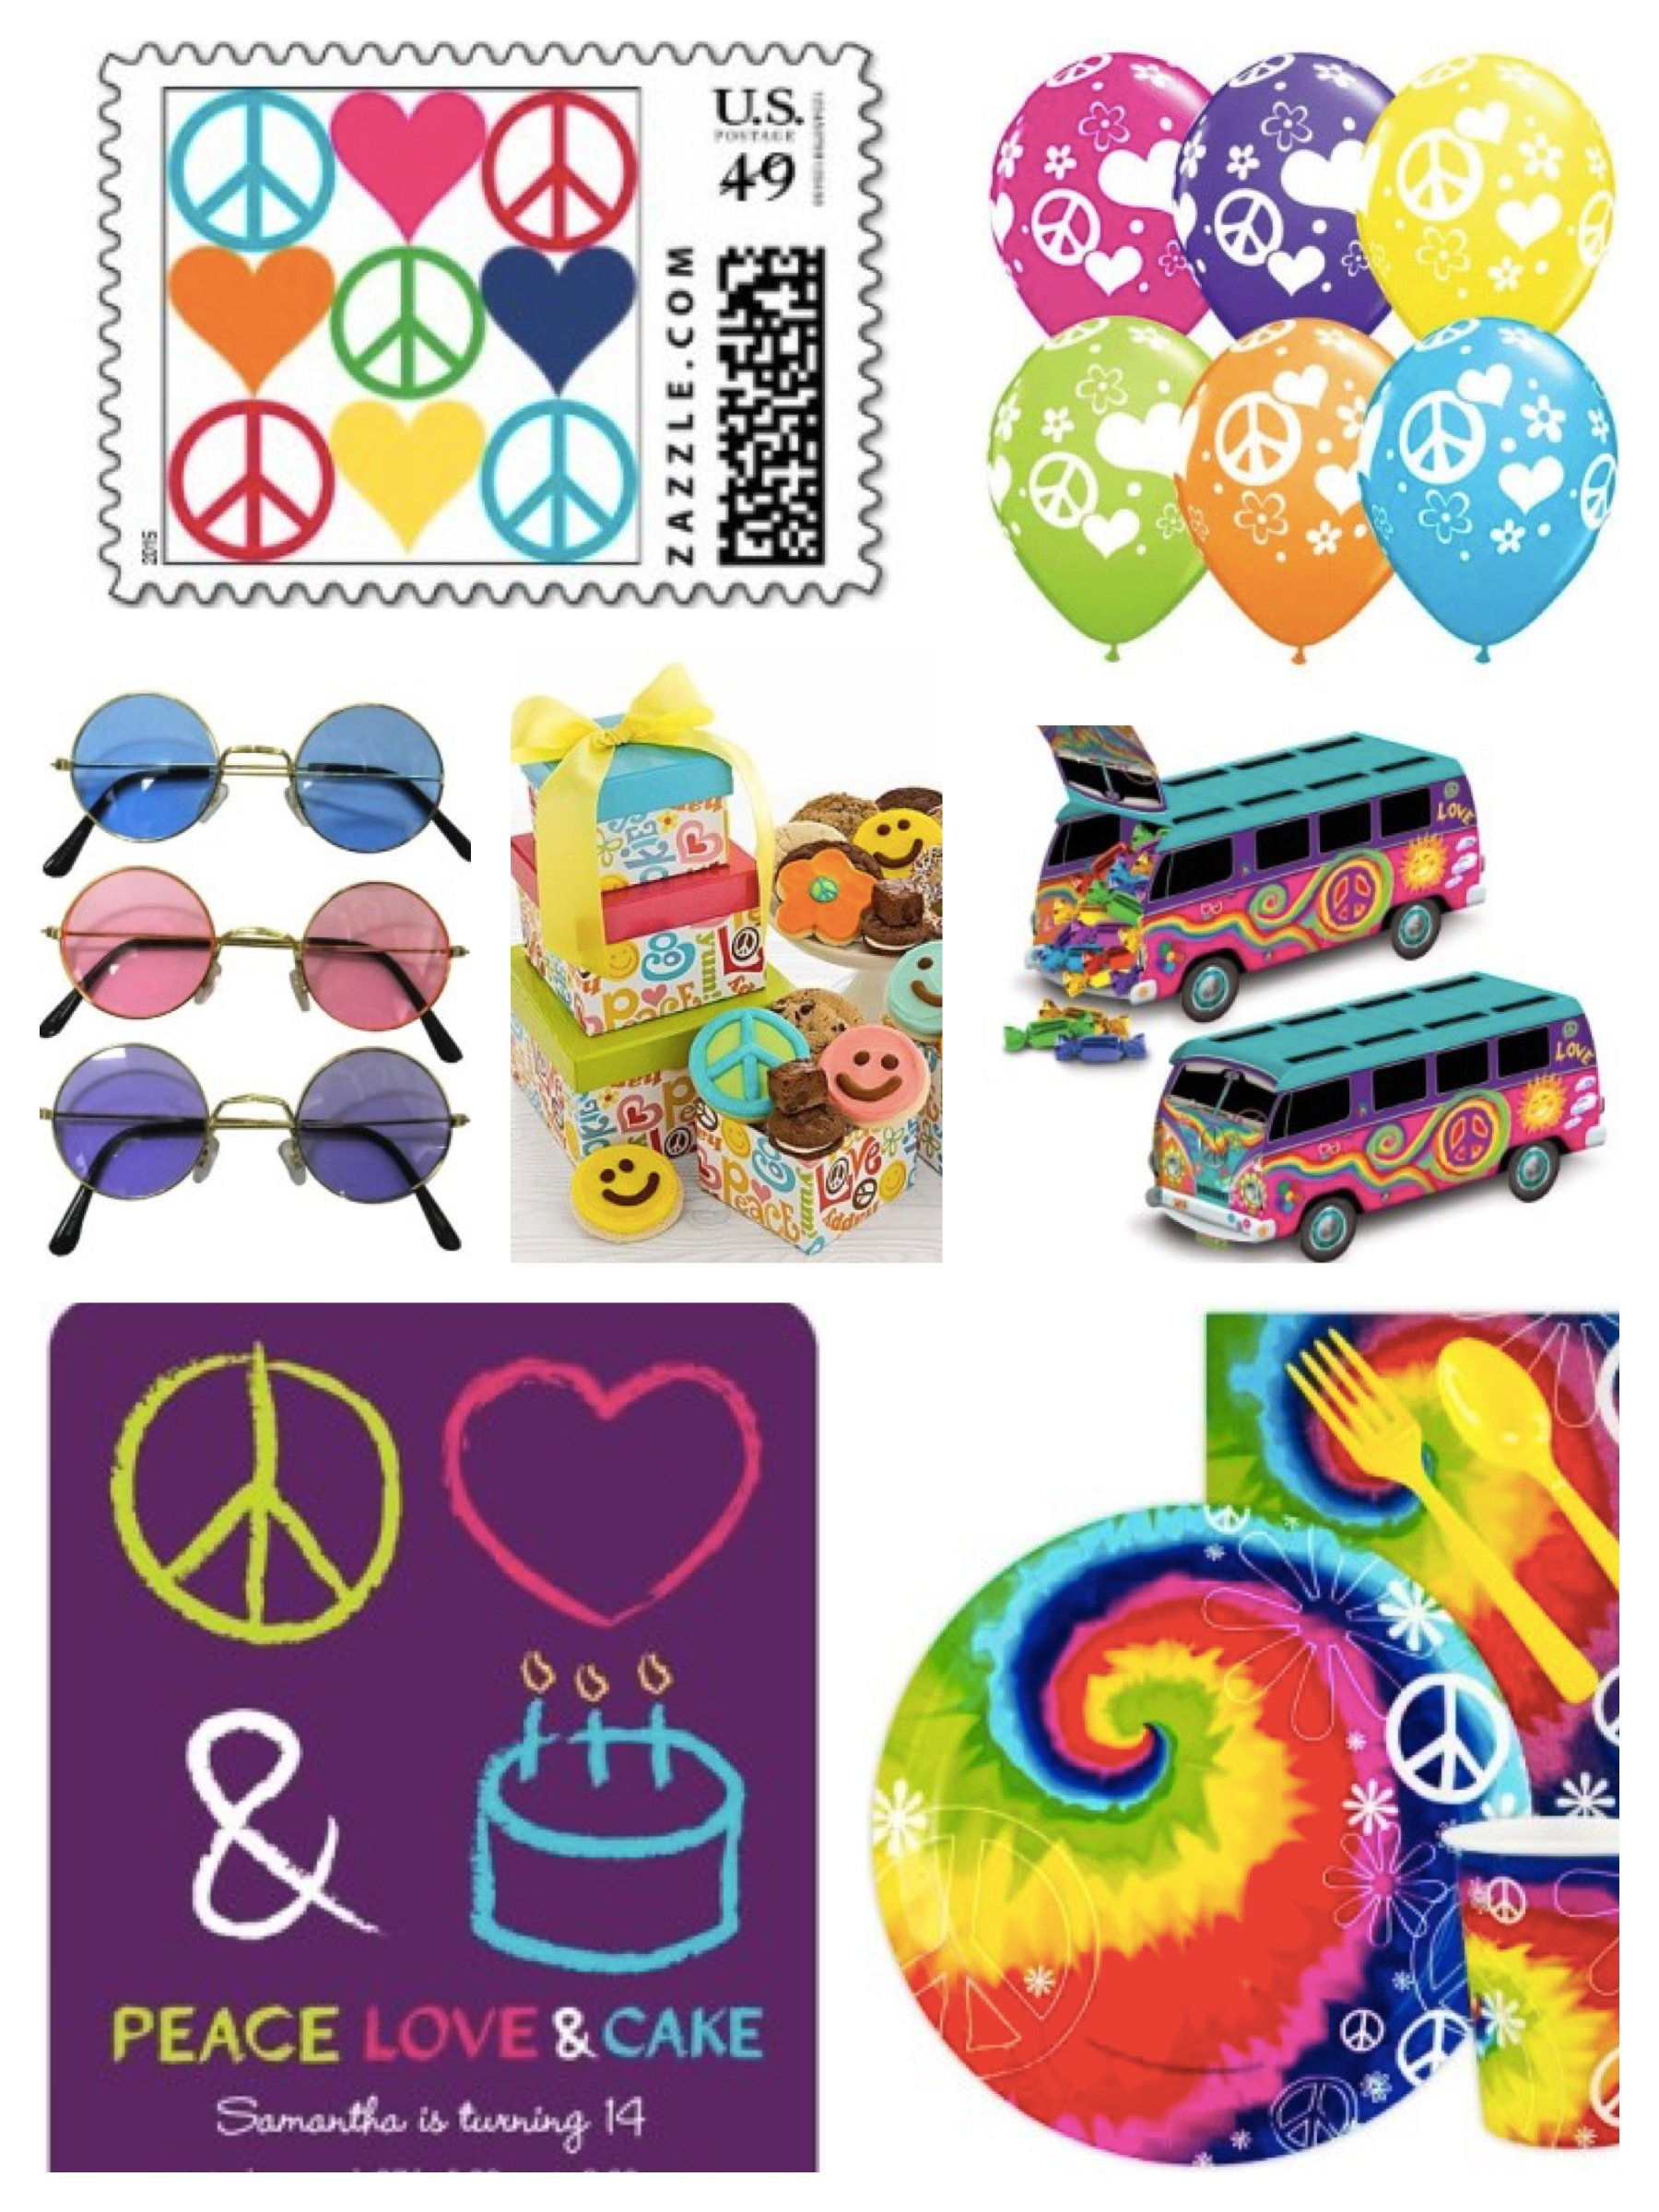 Peace and Love Party Theme, Ideas & Supplies